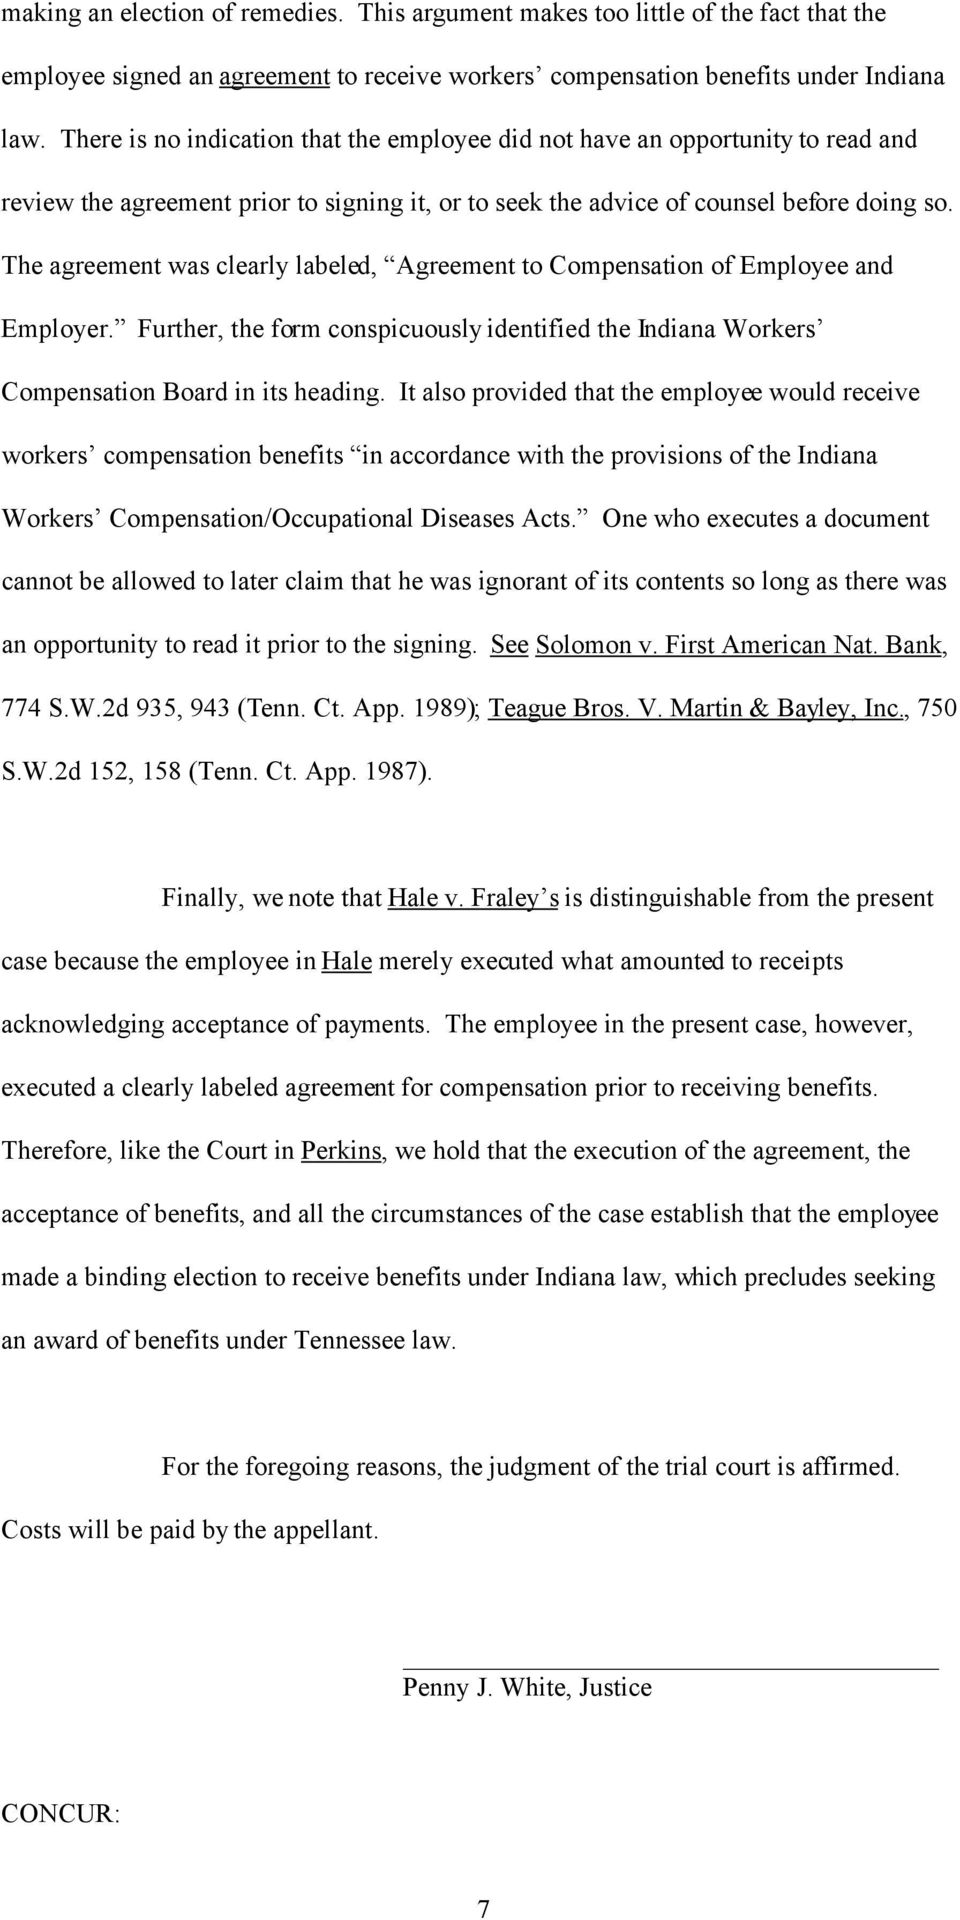 The agreement was clearly labeled, Agreement to Compensation of Employee and Employer. Further, the form conspicuously identified the Indiana Workers Compensation Board in its heading.